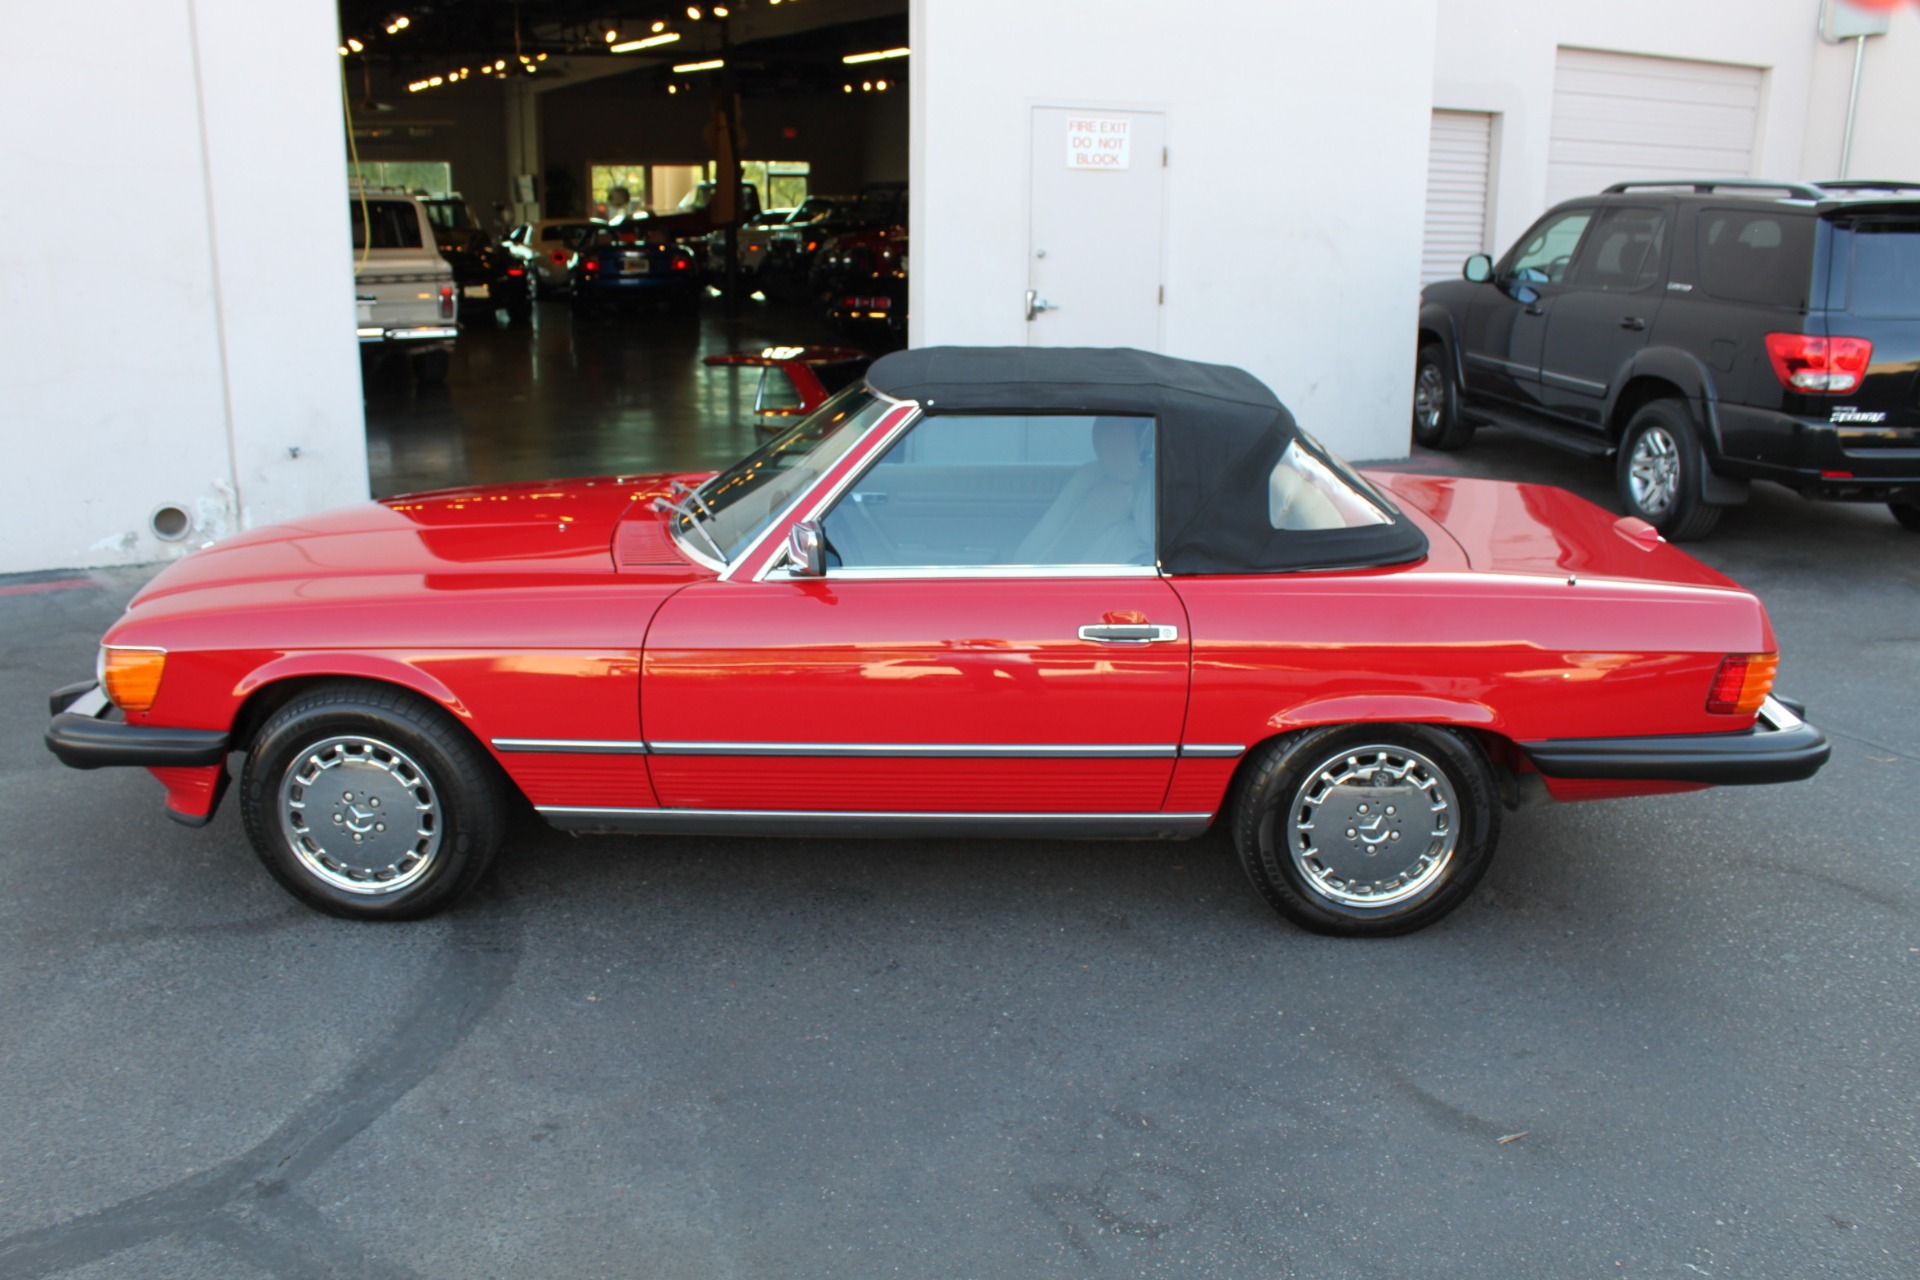 Used-1989-Mercedes-Benz-560-Series-560SL-XJ